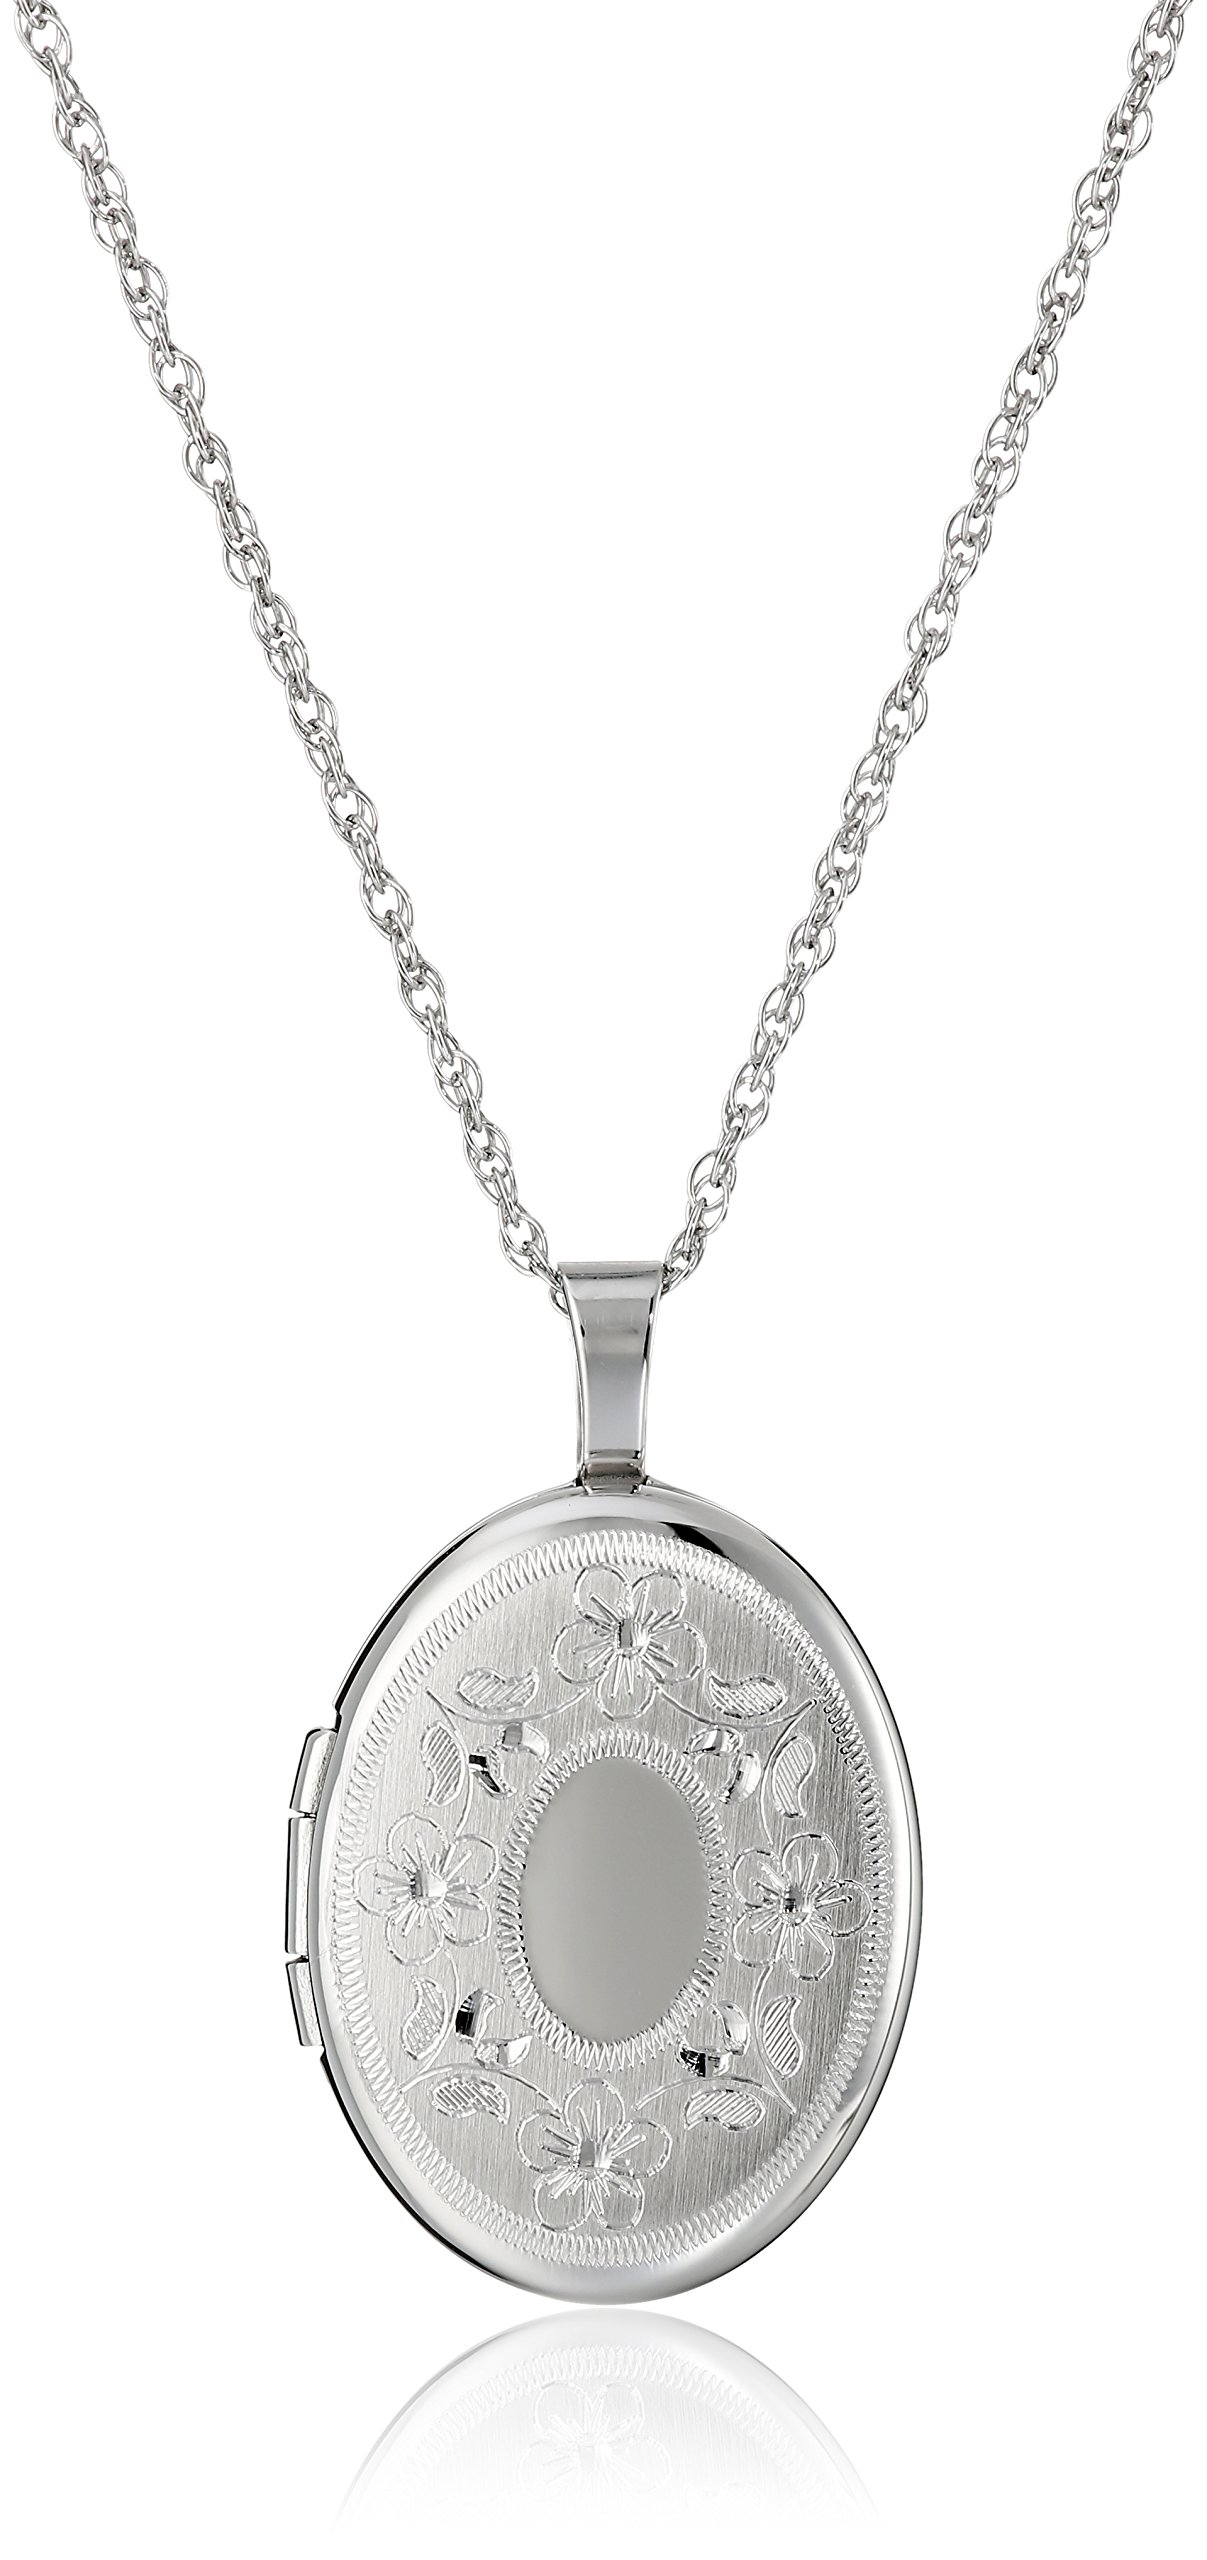 Sterling Silver Oval Hand-Engraved Locket Necklace, 18'' by Amazon Collection